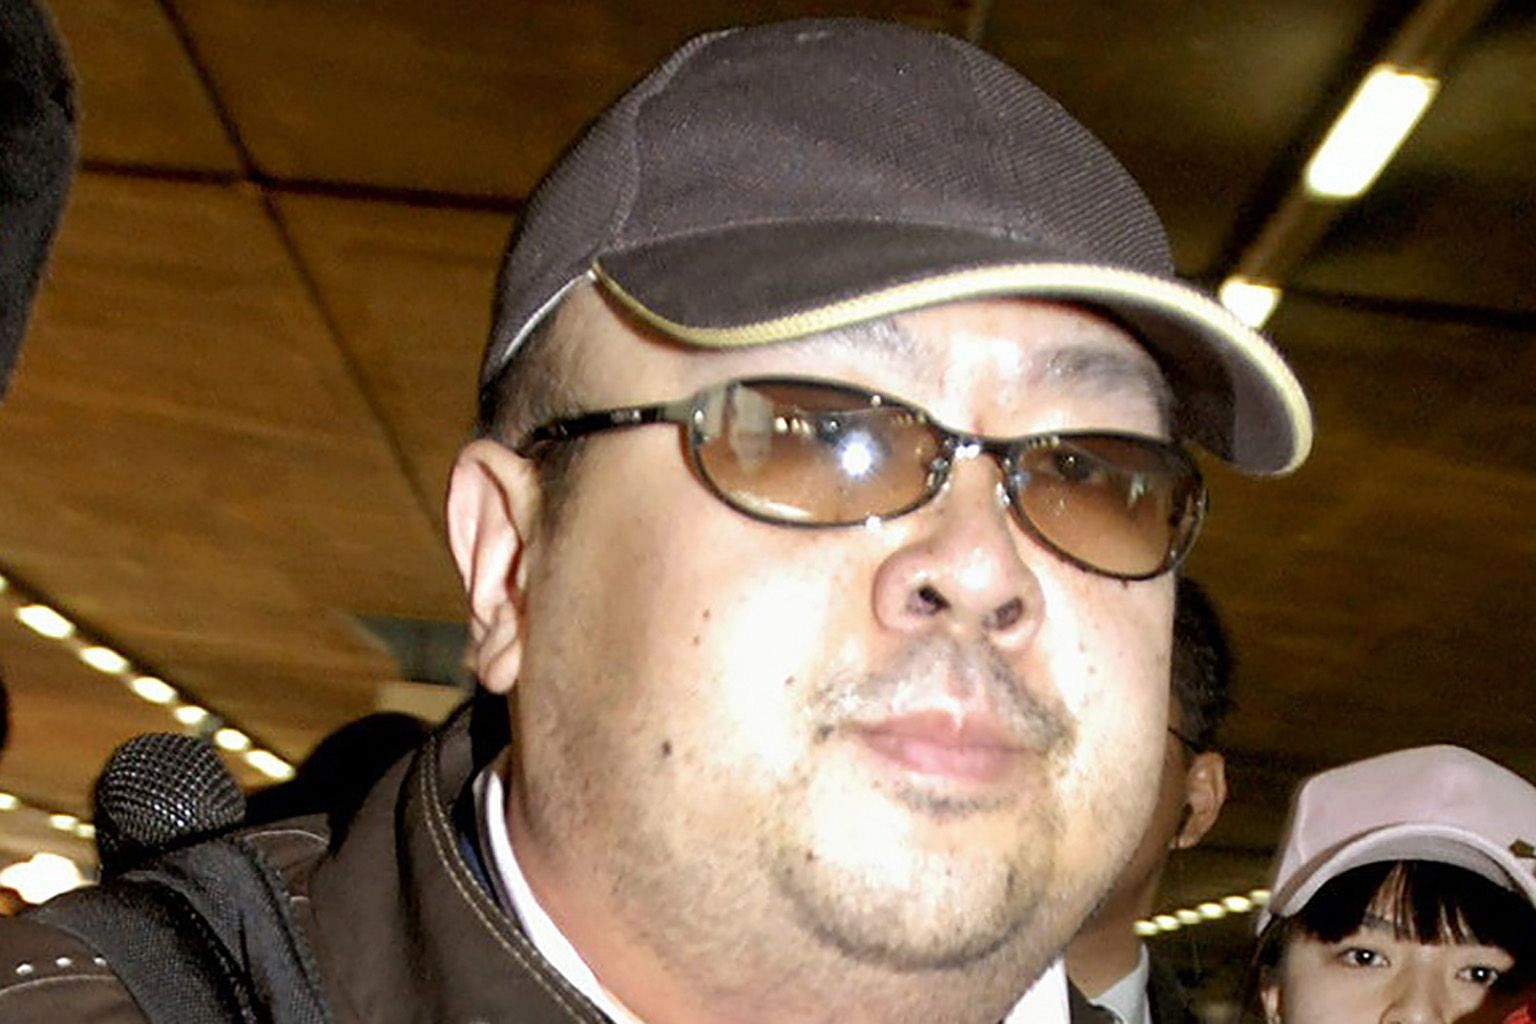 Mr Kim Jong Nam died after his face was smeared with nerve agent VX in Kuala Lumpur airport in 2017.